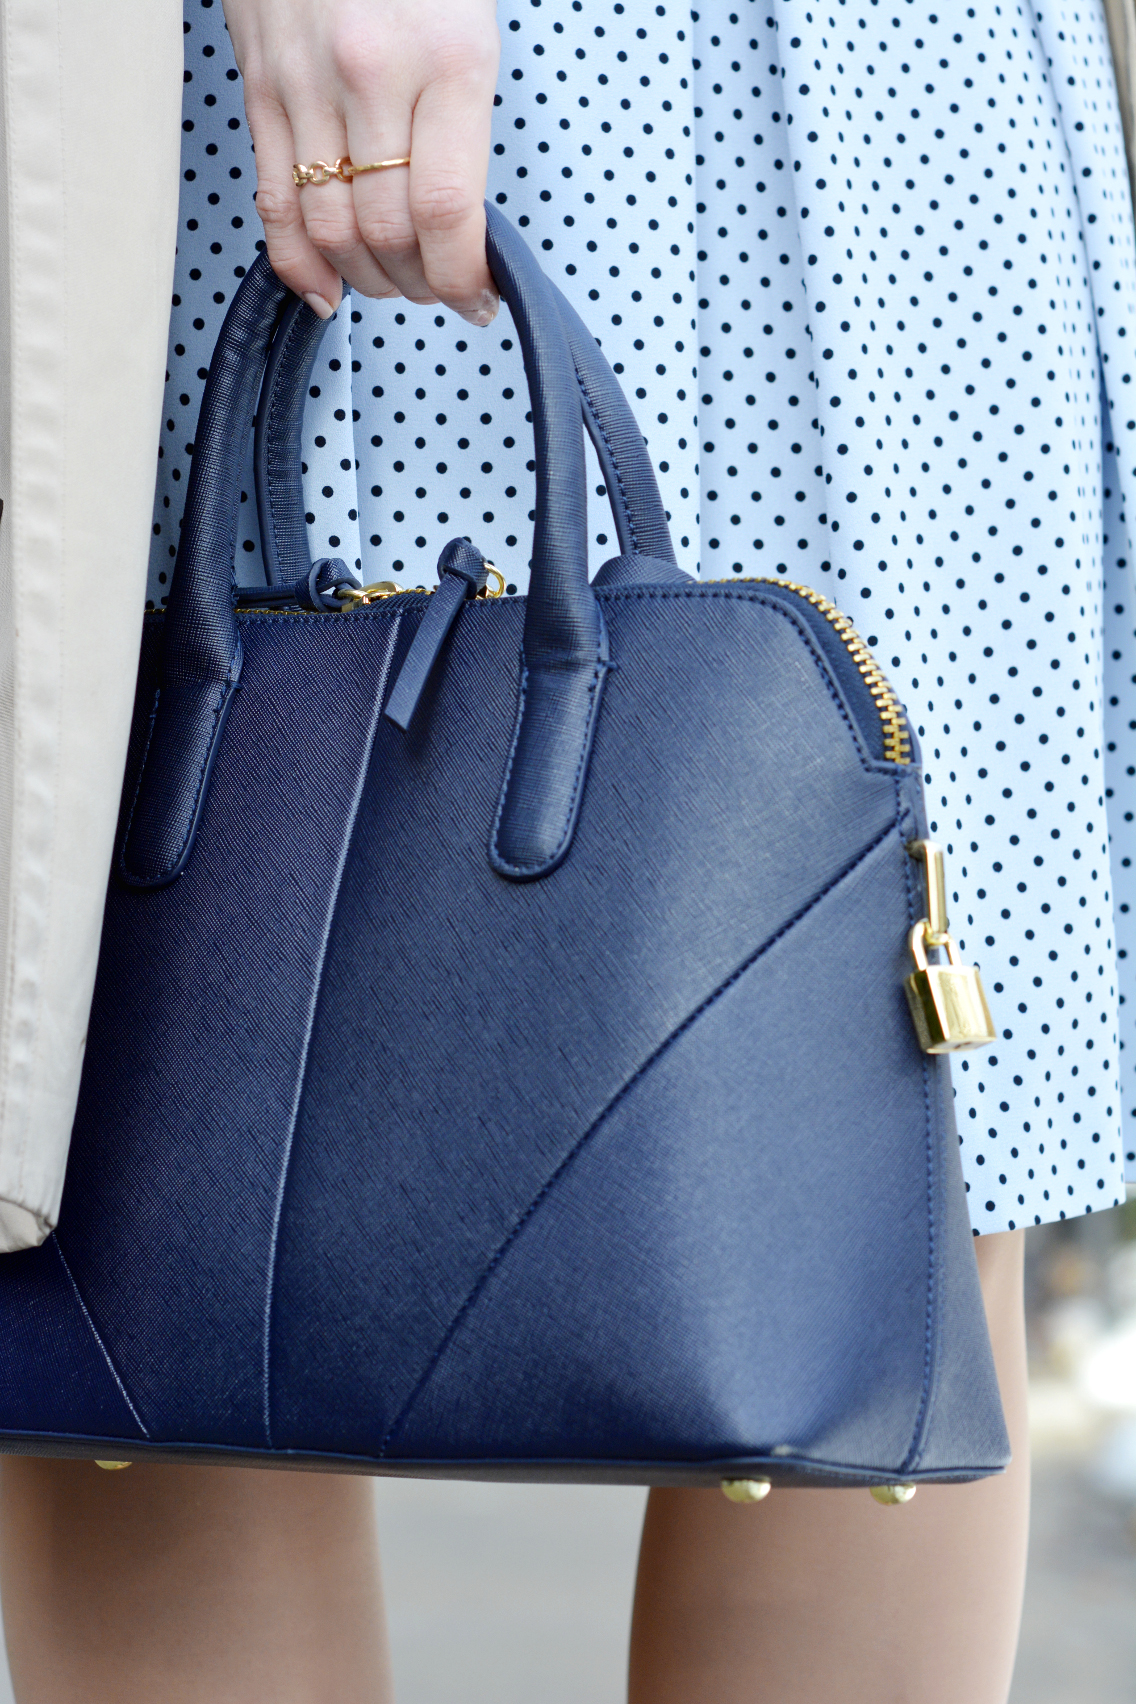 Zara Navy City Bag Purse